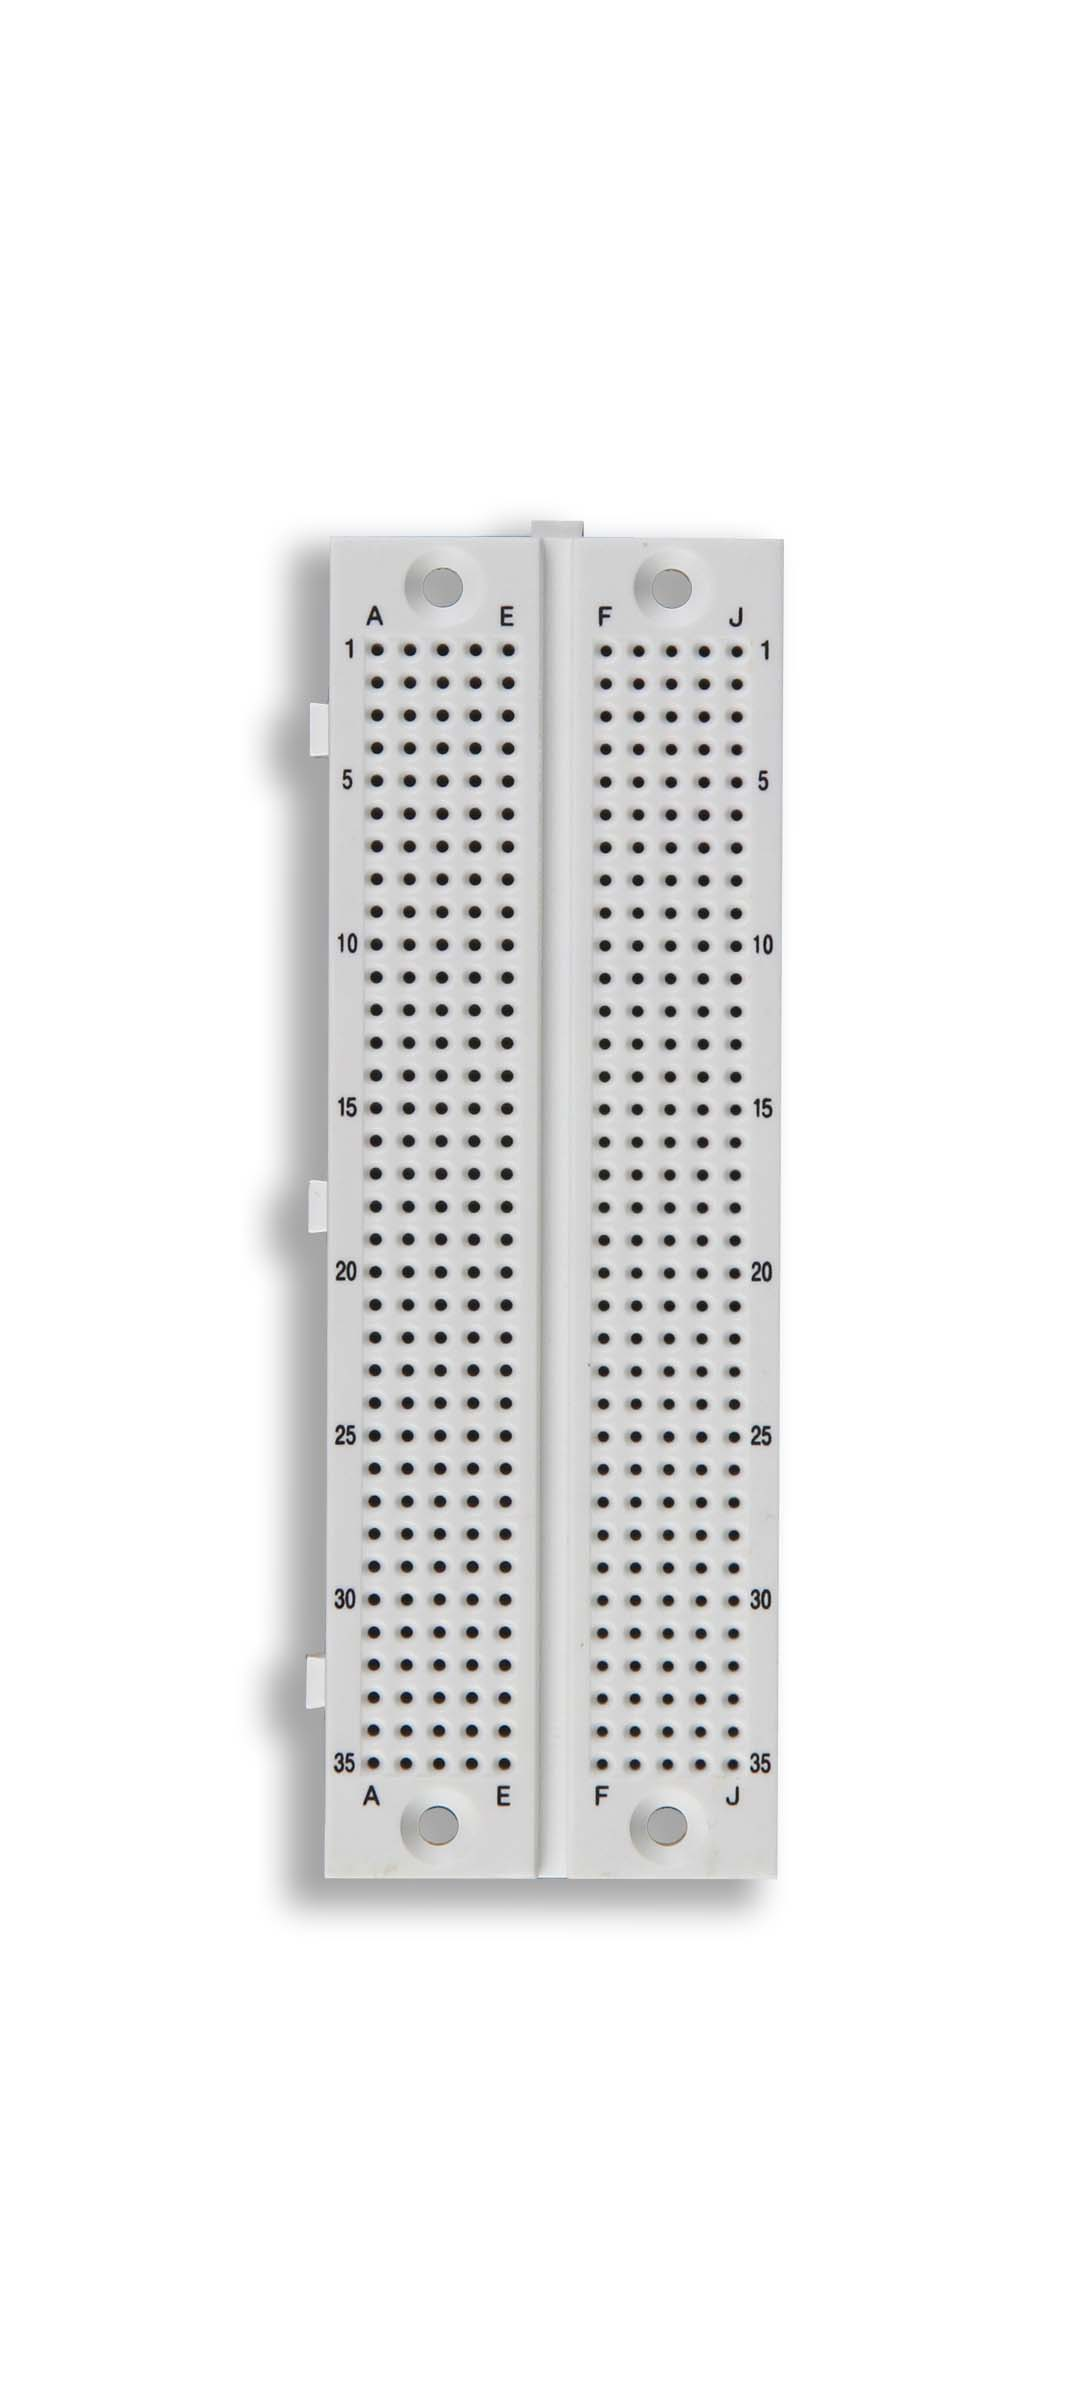 Global Specialties GS-351 Solderless Breadboard, 350 Tie-Points